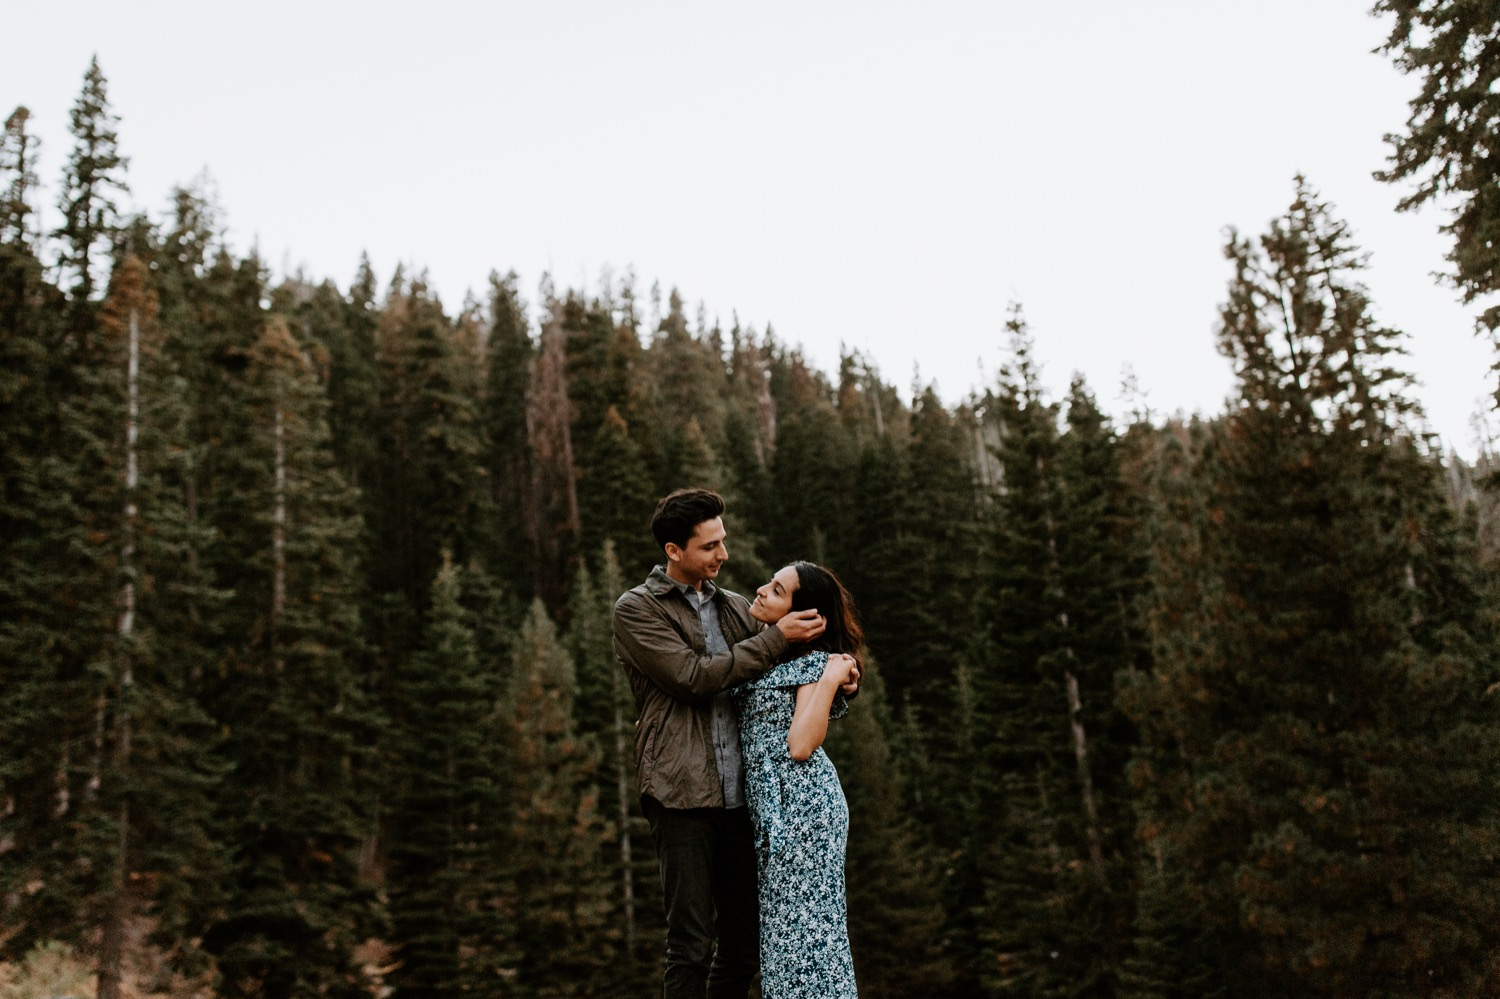 34_Yosemite-National-Park-Engagement-Session-Emily-Magers-Photography83.jpg